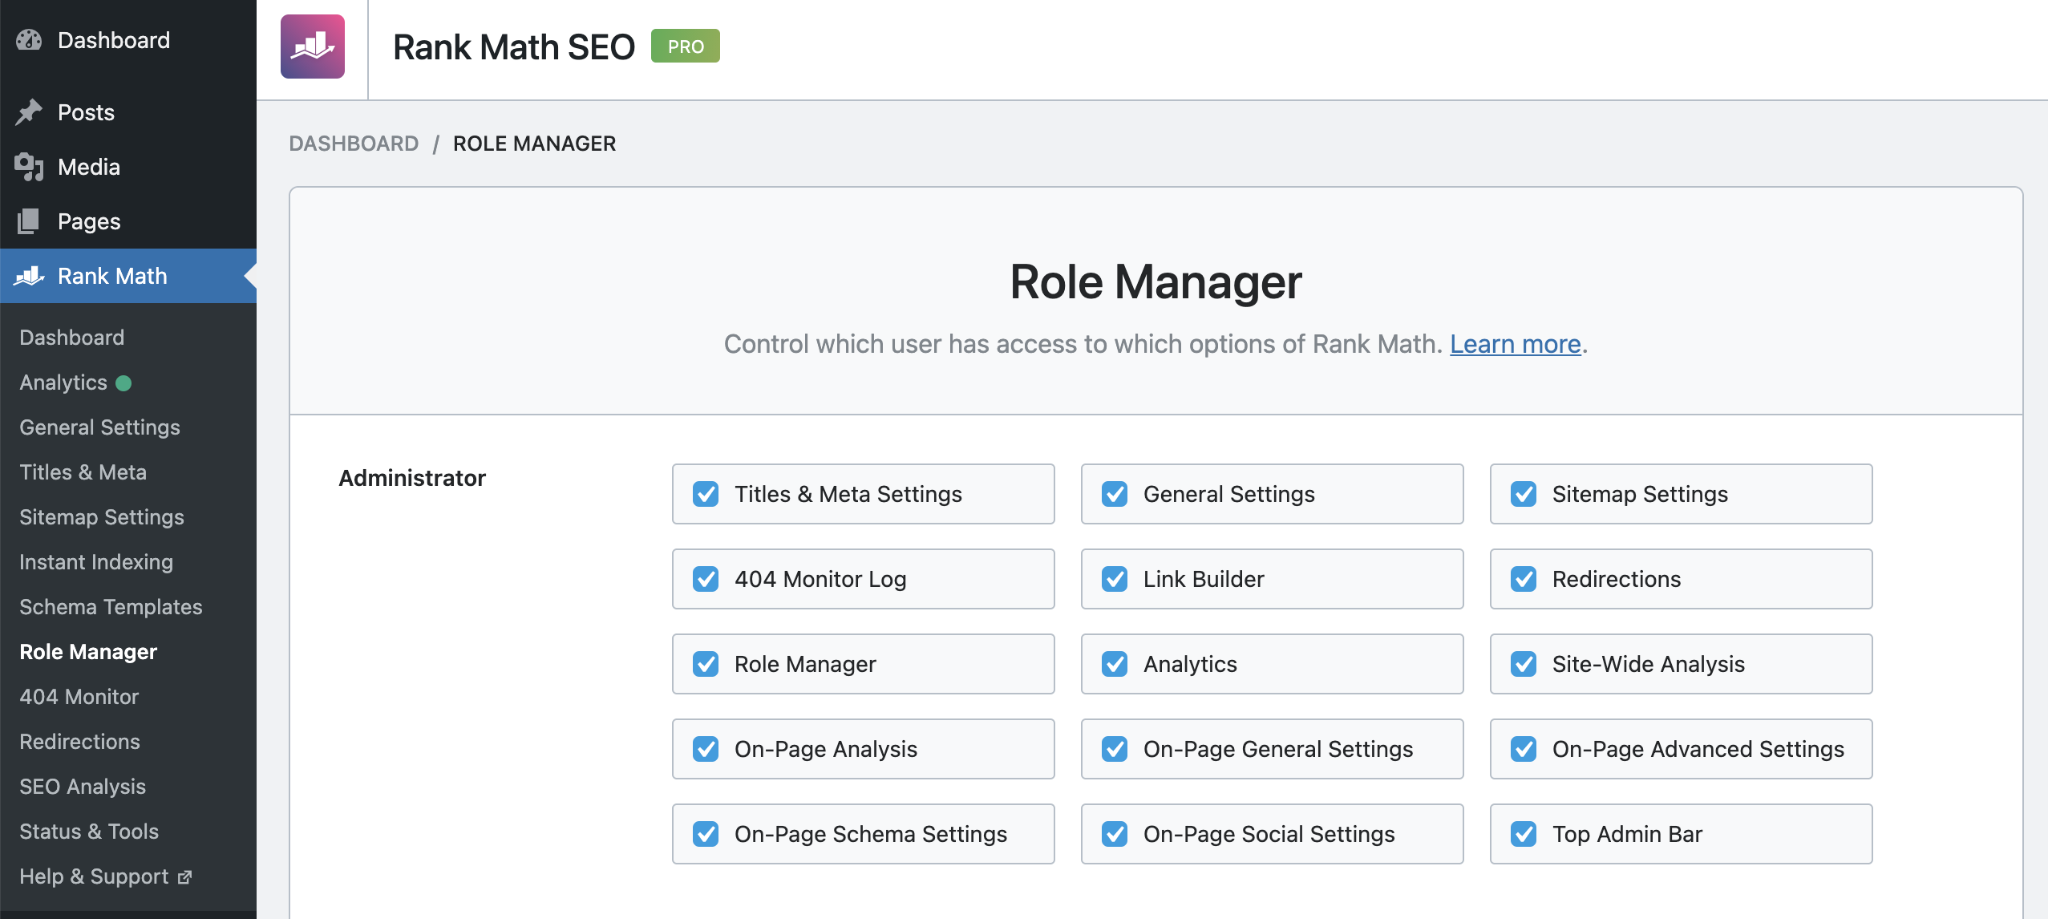 Rank Math Role Manager